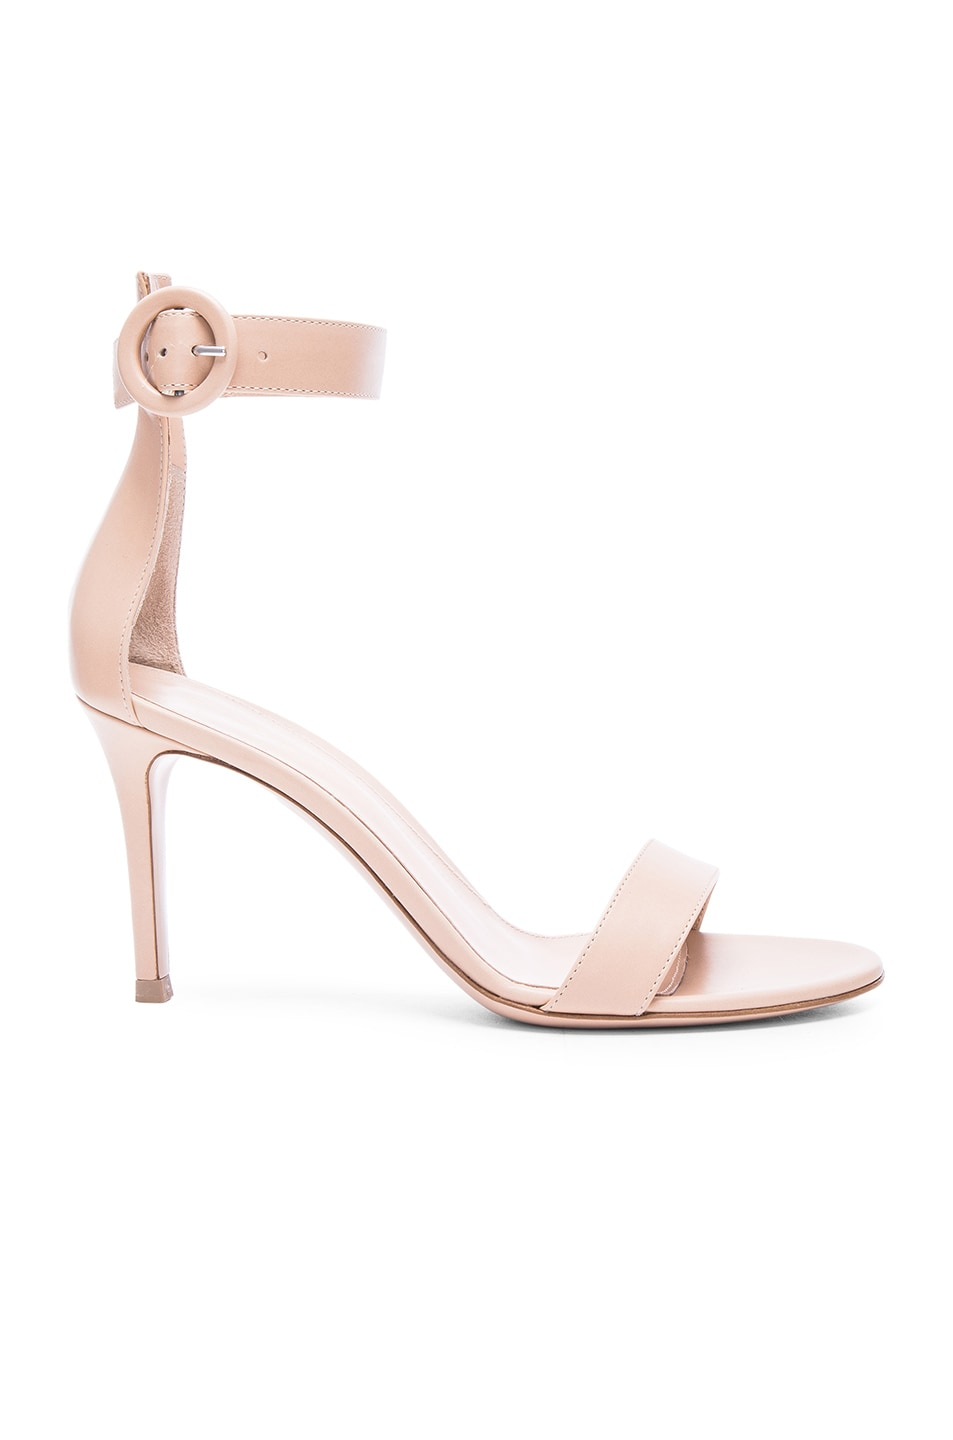 Image 1 of Gianvito Rossi Leather Ankle Strap Heels in Nude